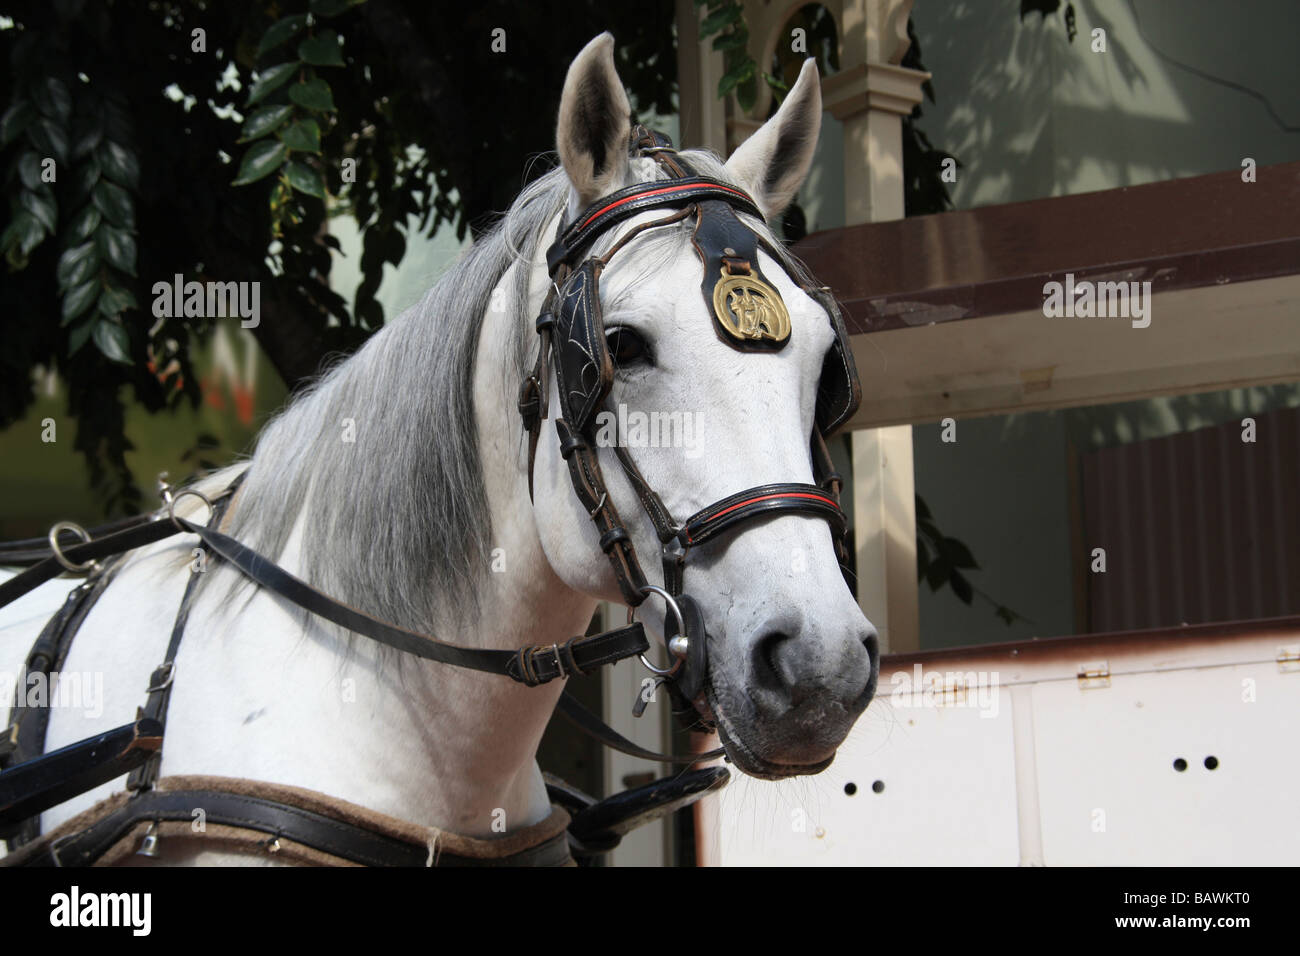 White Horse In Parade Gear Stock Photo Alamy